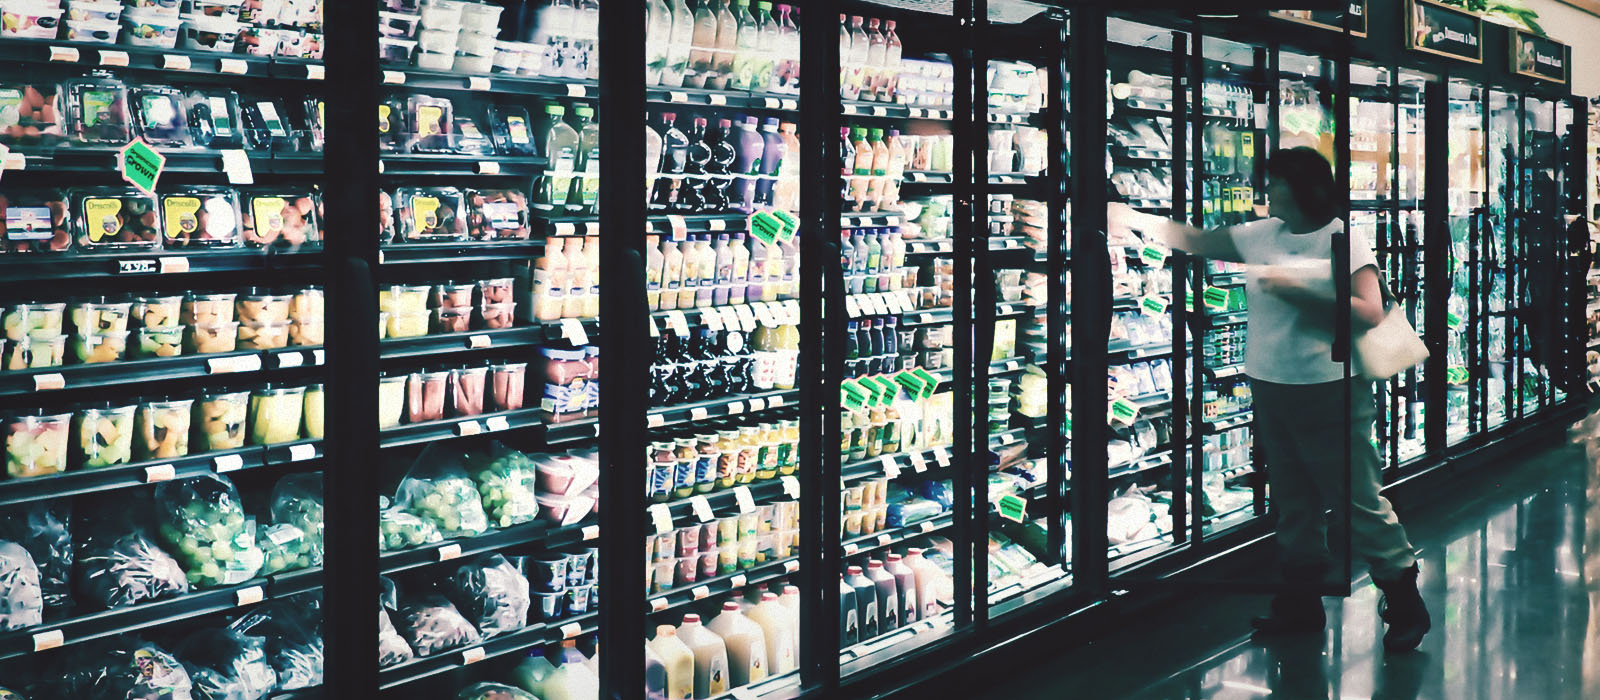 Woman and Refrigerators full of produce